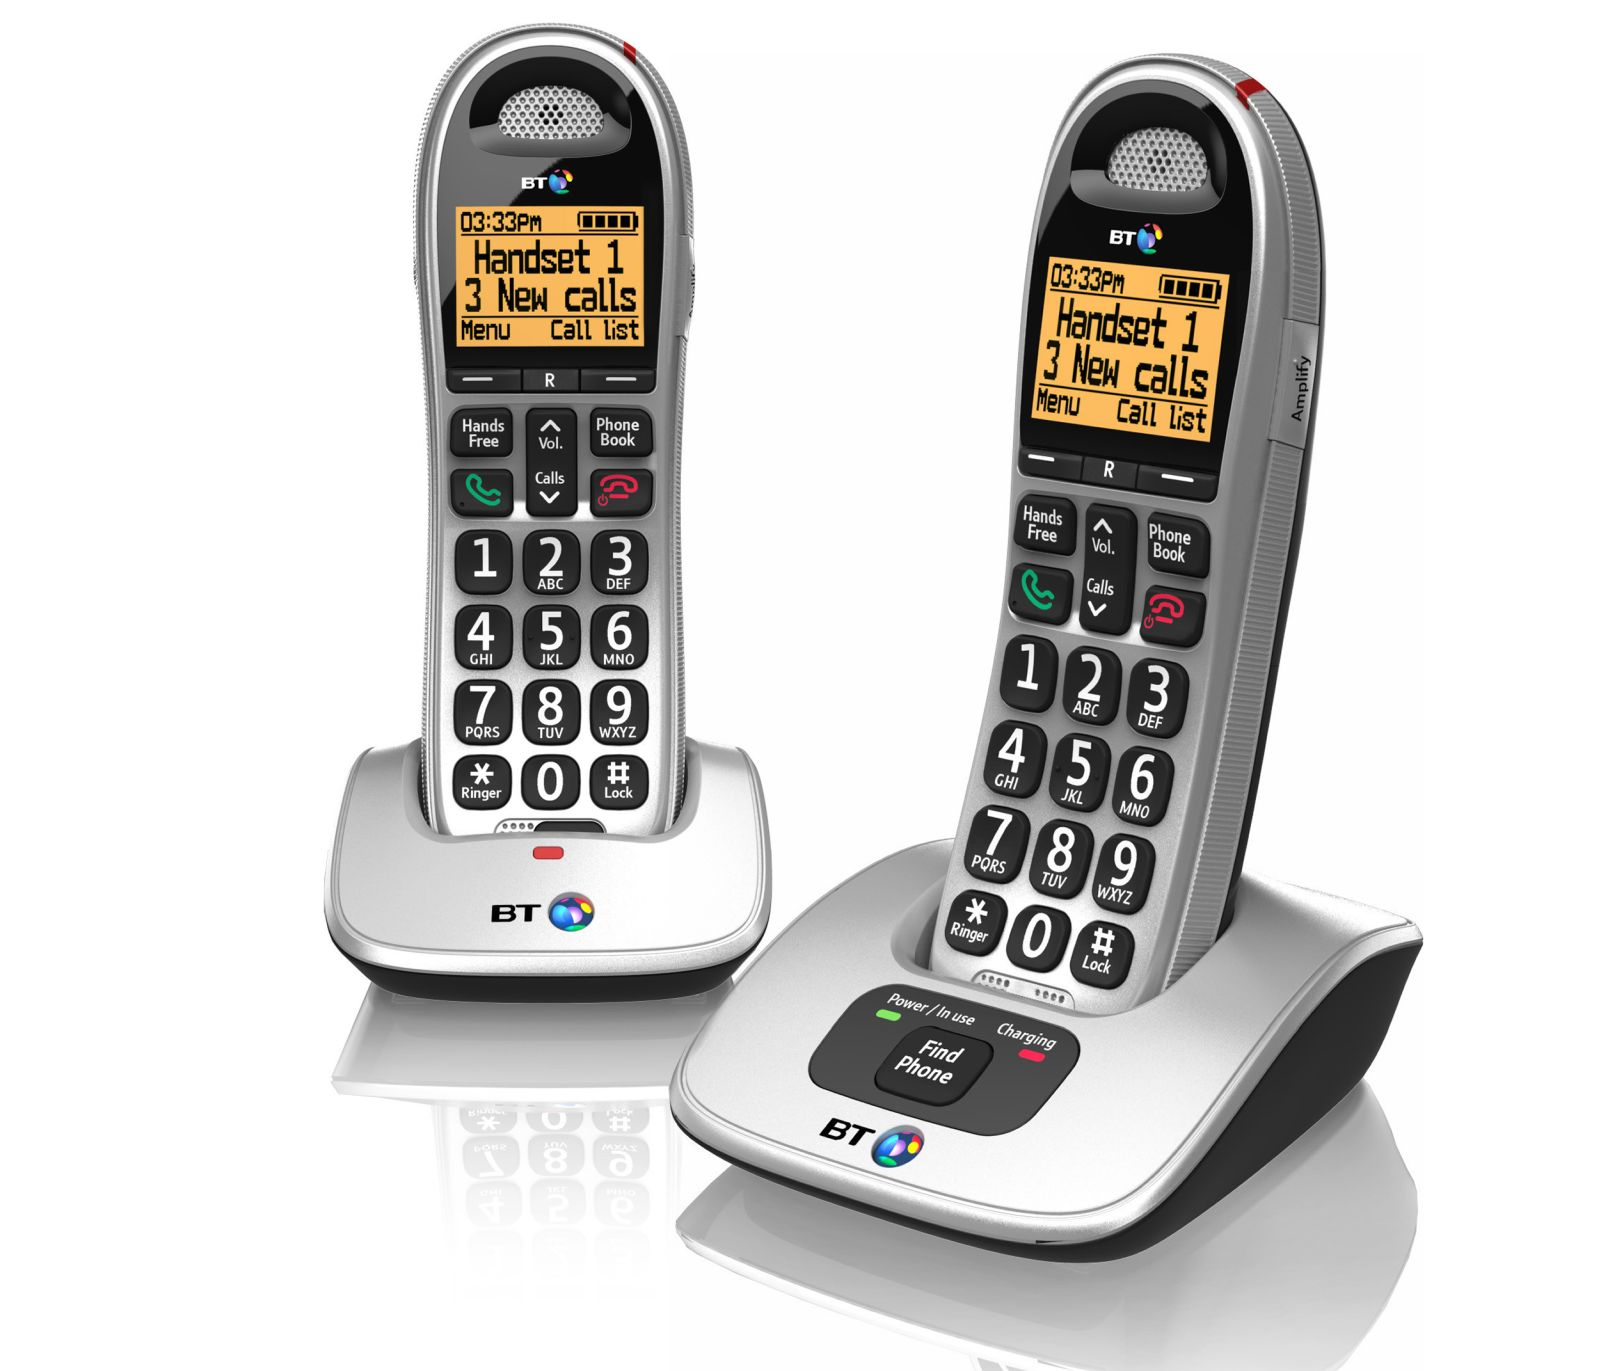 Image of BT 4000 Big Button Cordless Phone, Twin Handset